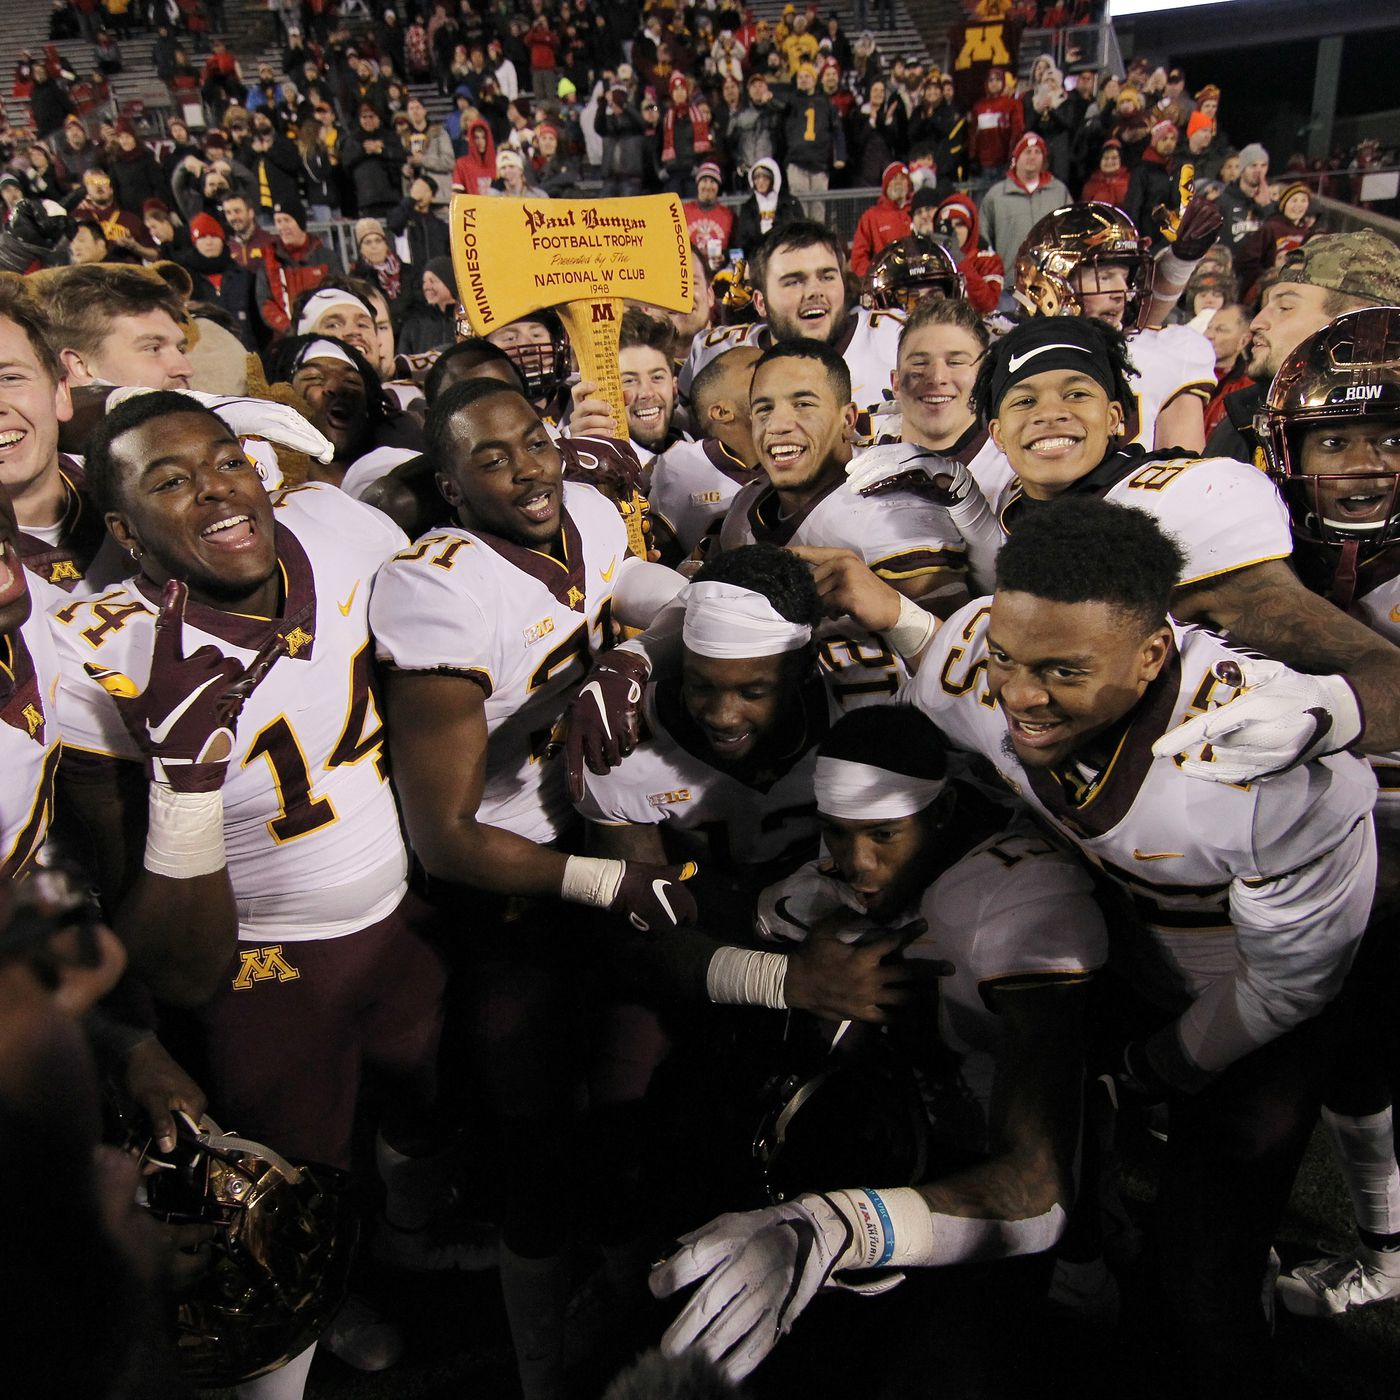 2019 Minnesota Golden Gophers Football Schedule Record Predictions Picks Games Could Minnesota Win The Big Ten West Title Off Tackle Empire